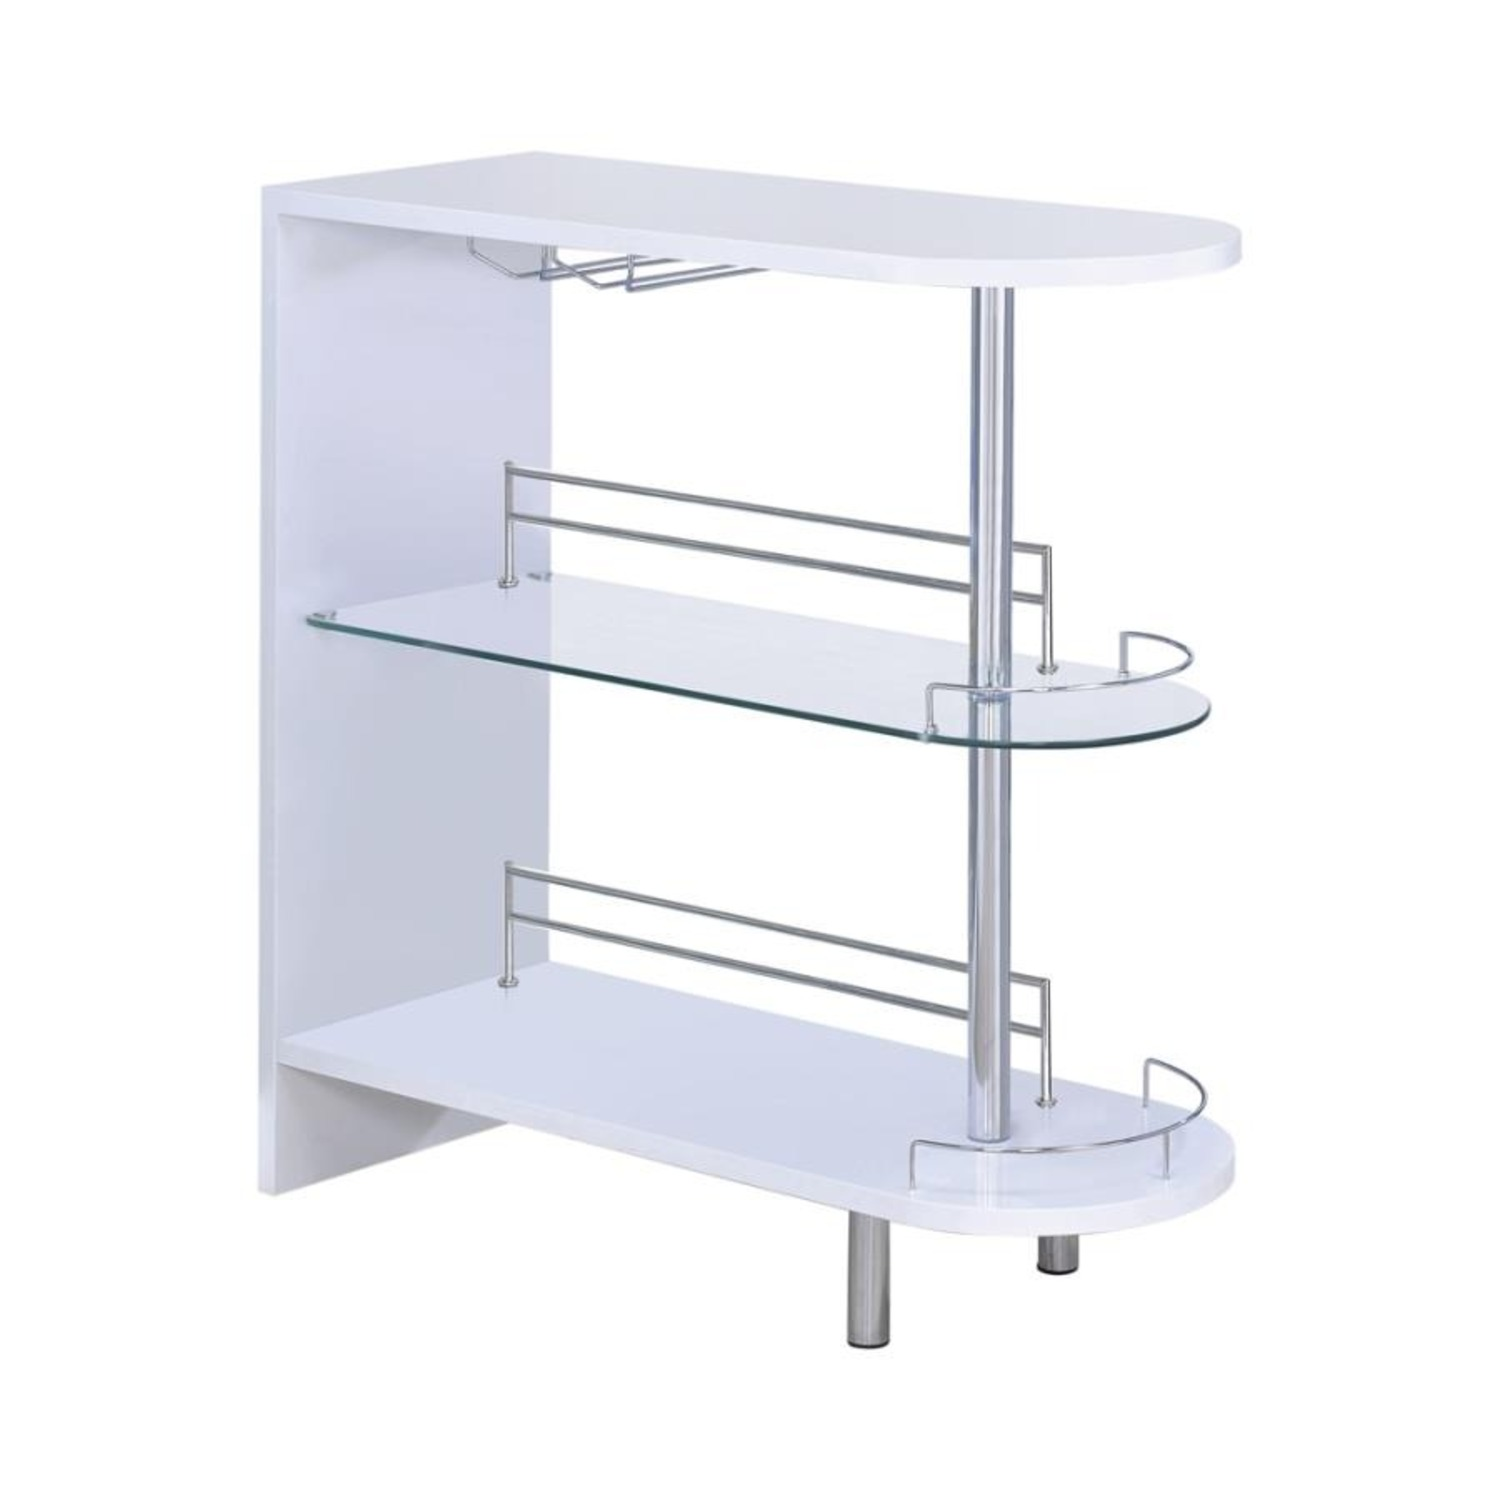 Bar Cart In Glossy White W/ Tempered Glass Shelf - image-0